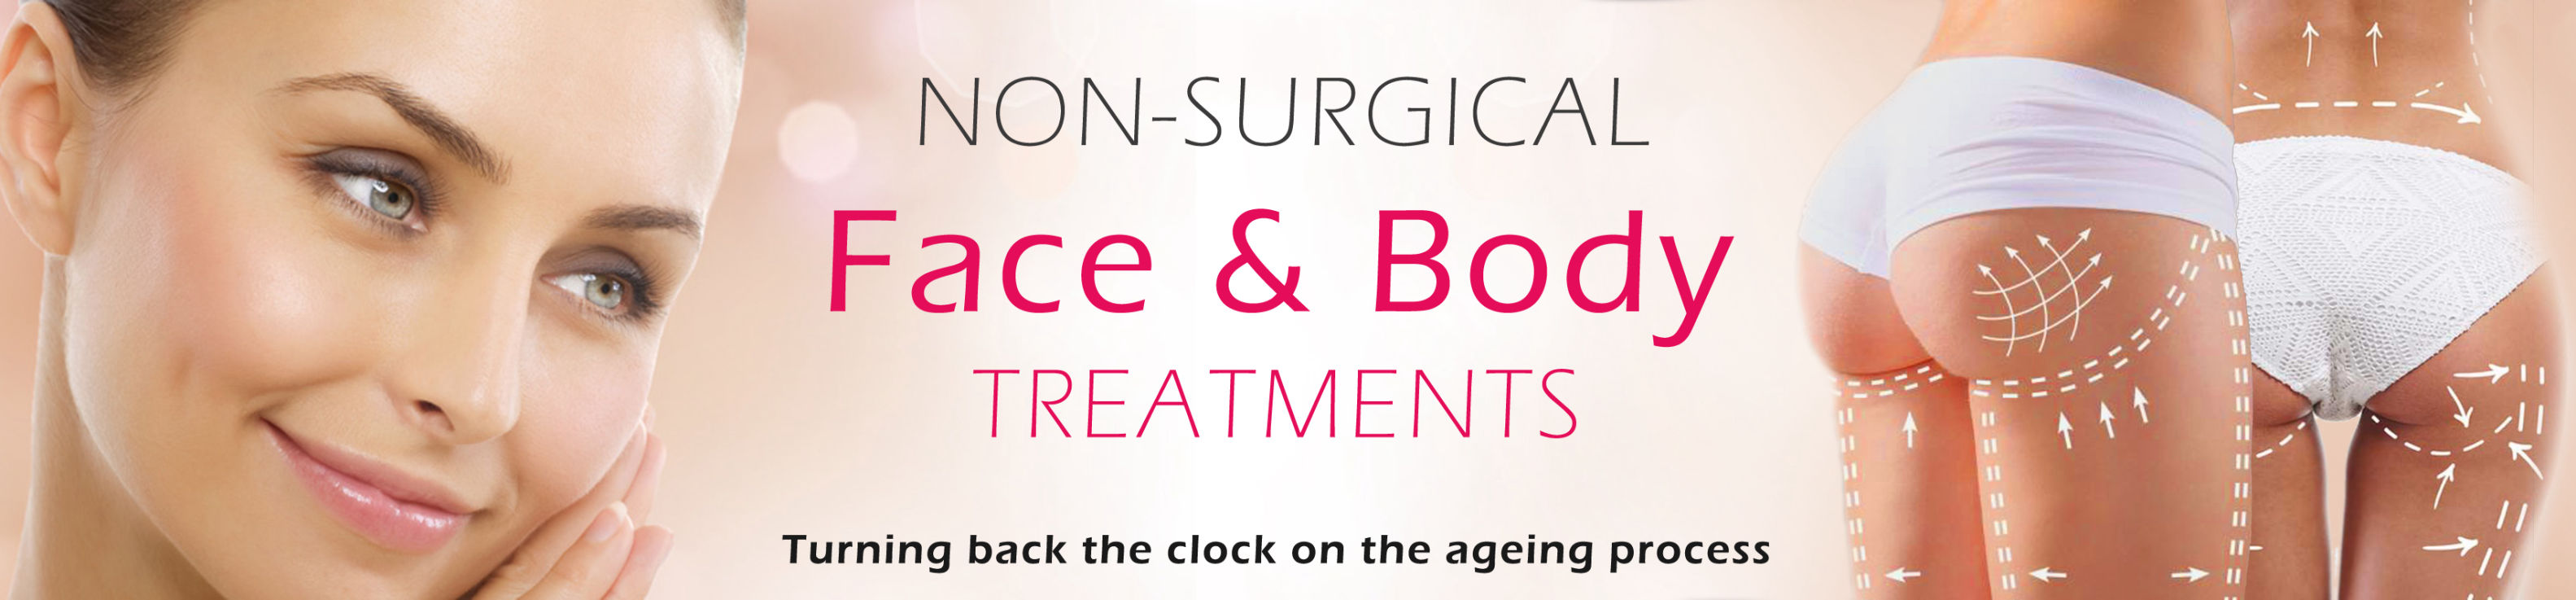 Non- Surgical Aesthetics Treatments zee Harley Street